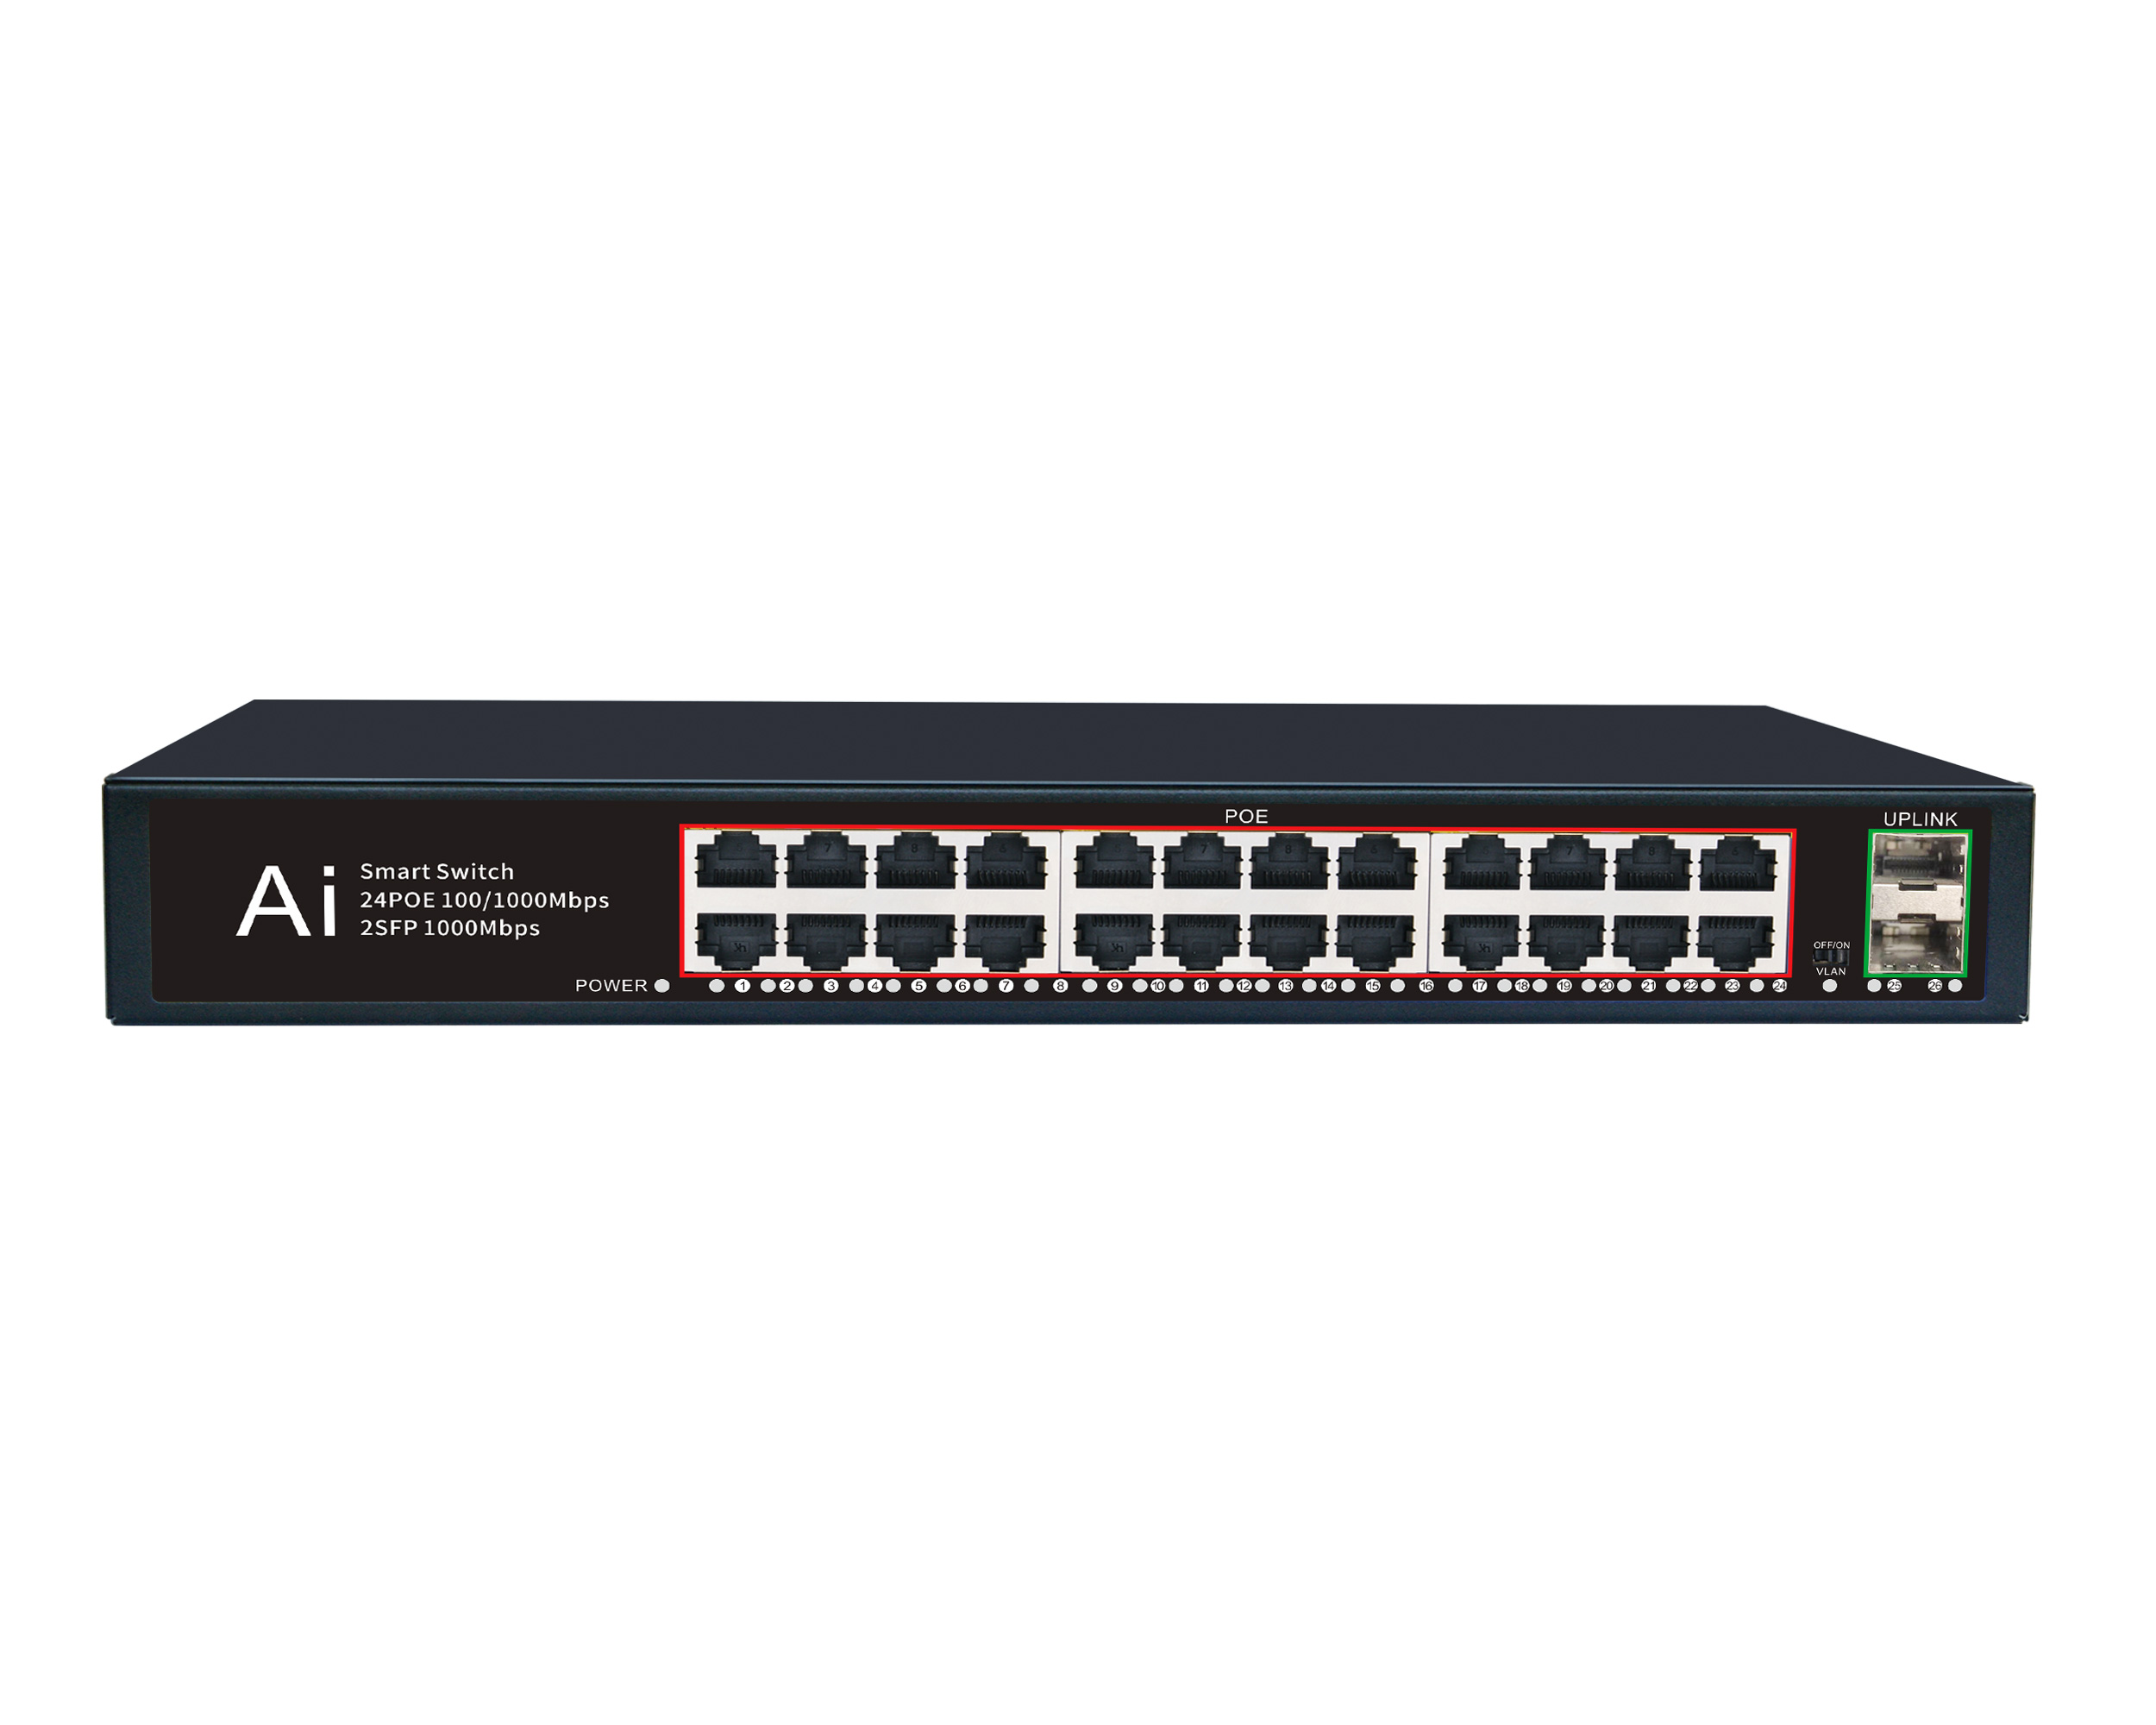 Can a POE switch transmit a distance of 250 meters?